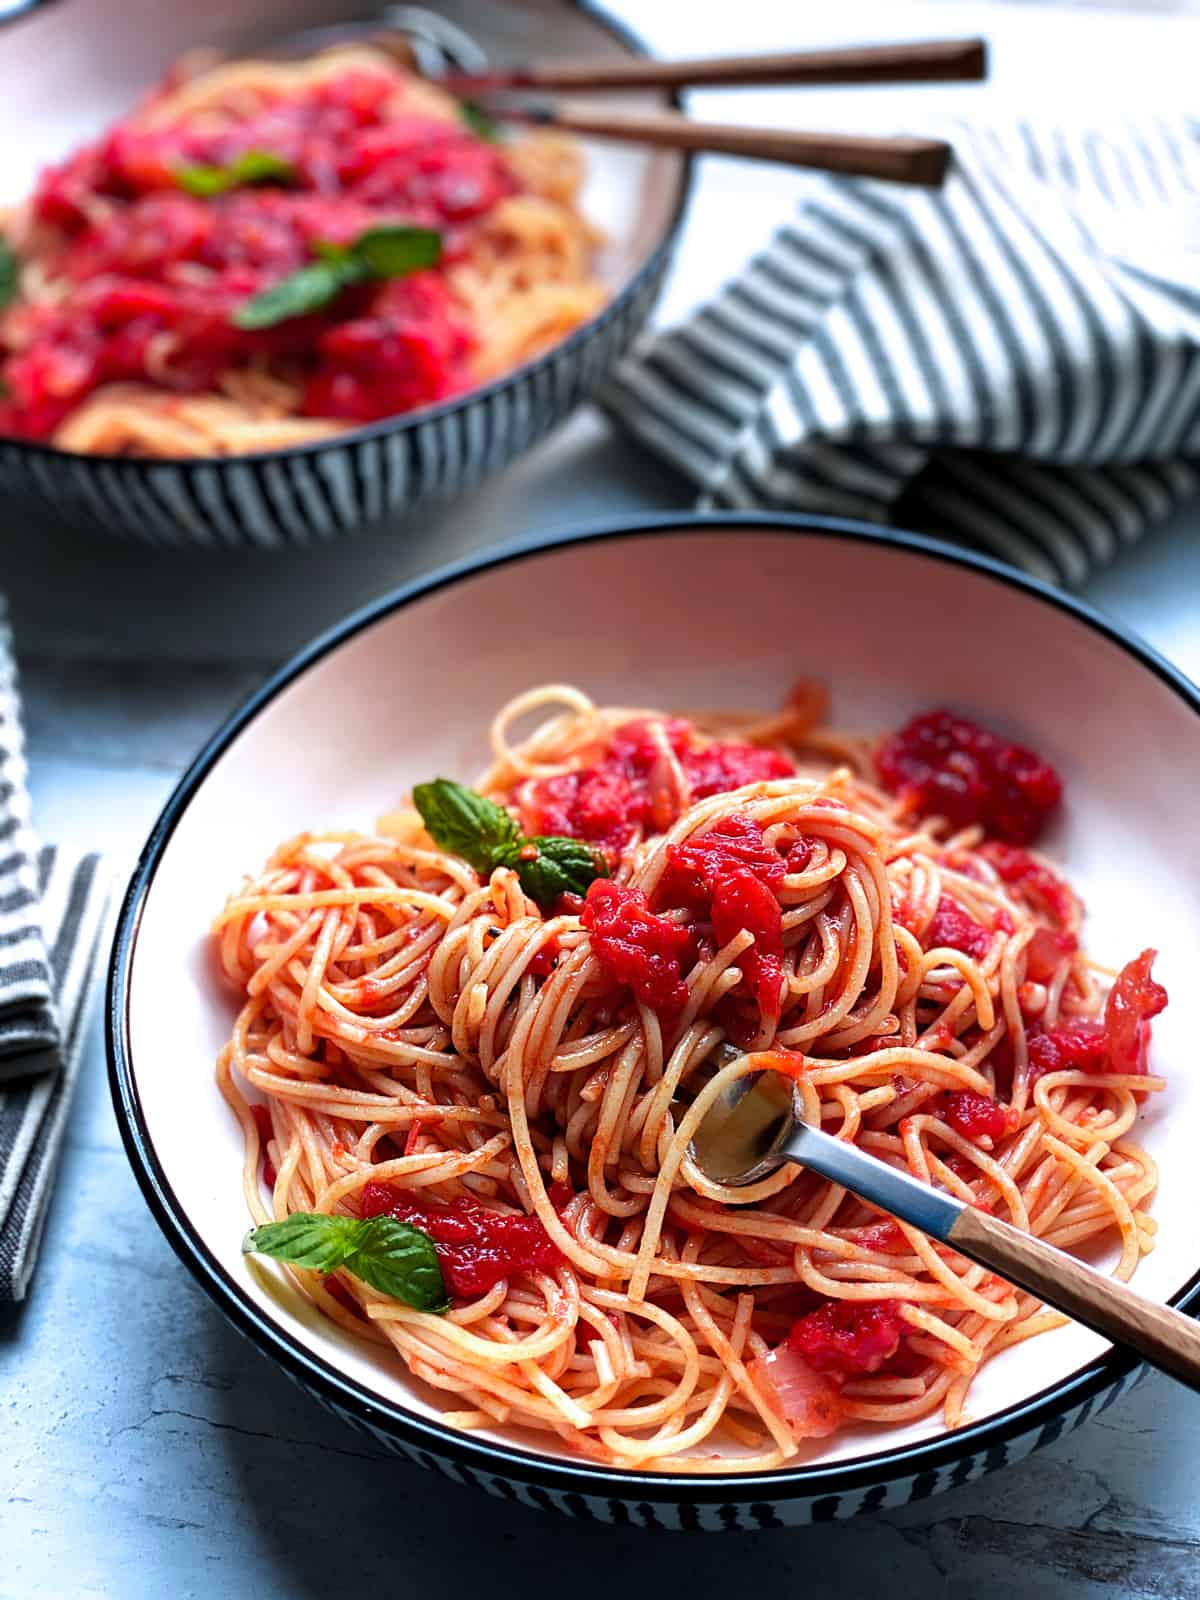 Two plates with spaghetti and tomato basil sauce.